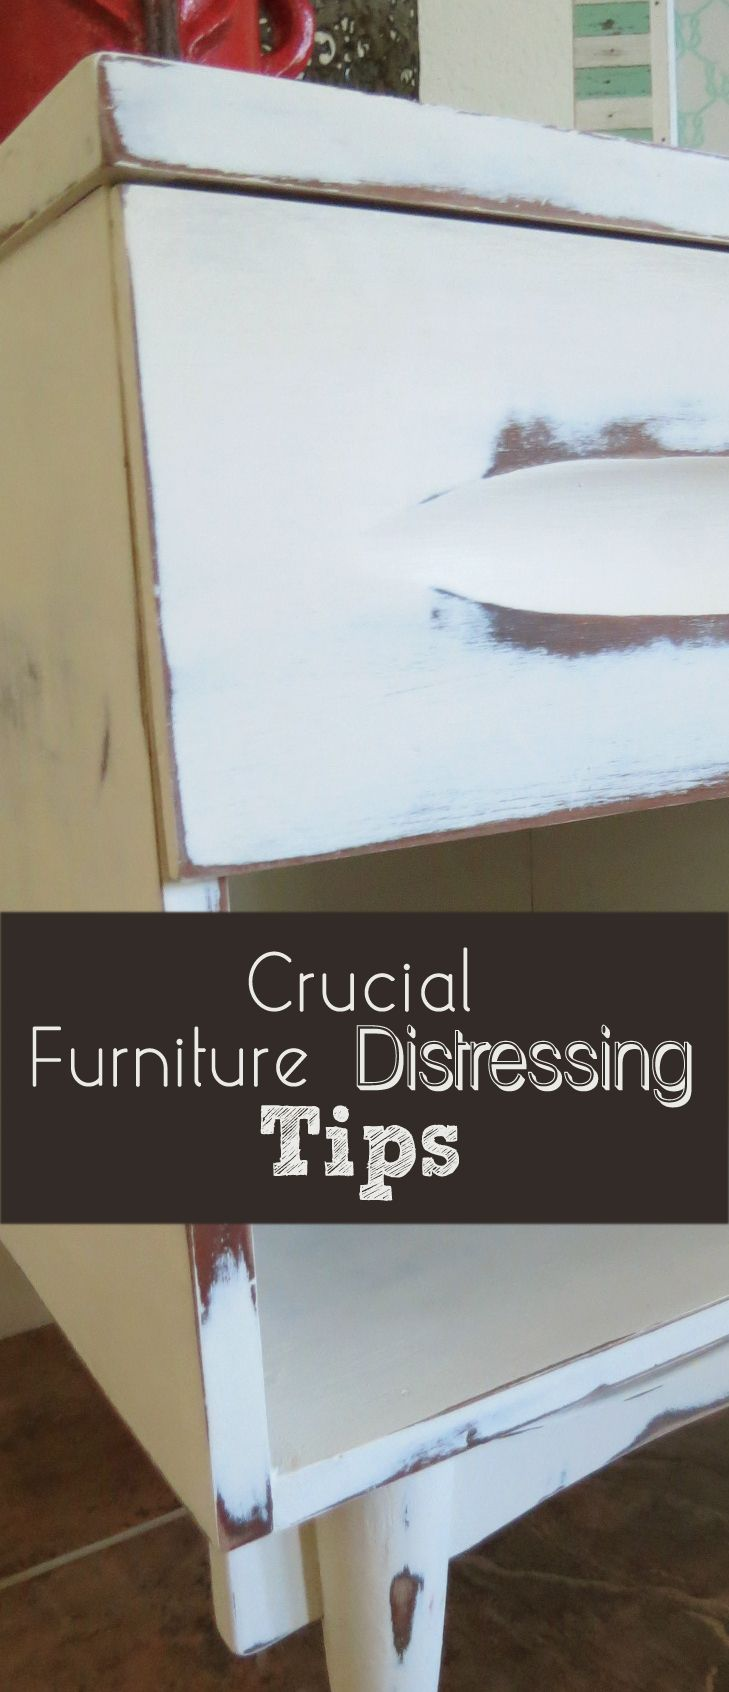 207 Best Paintingdistressing Techniques Images On Pinterest Painted Furniture Salvaged